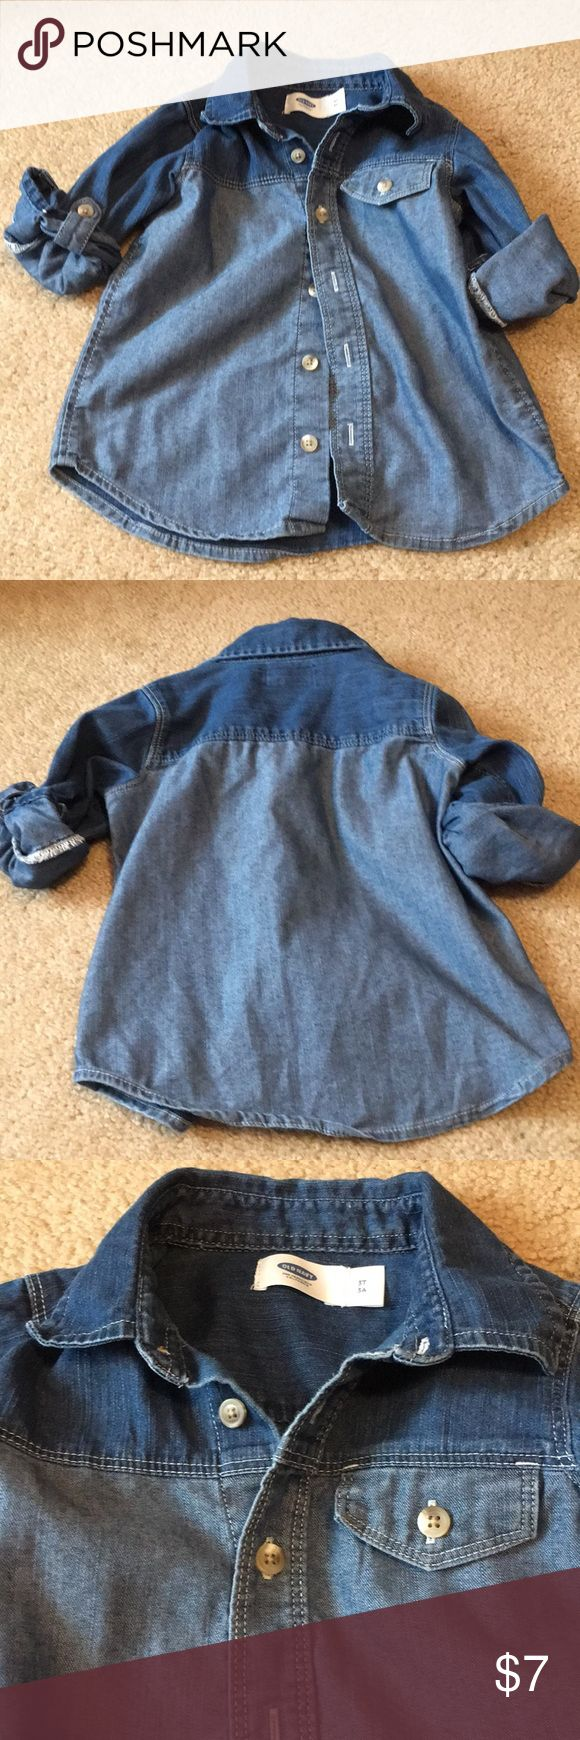 Super cute denim shirt for little girl This cute denim shirt is still in great condition Old Navy Shirts & Tops Button Down Shirts